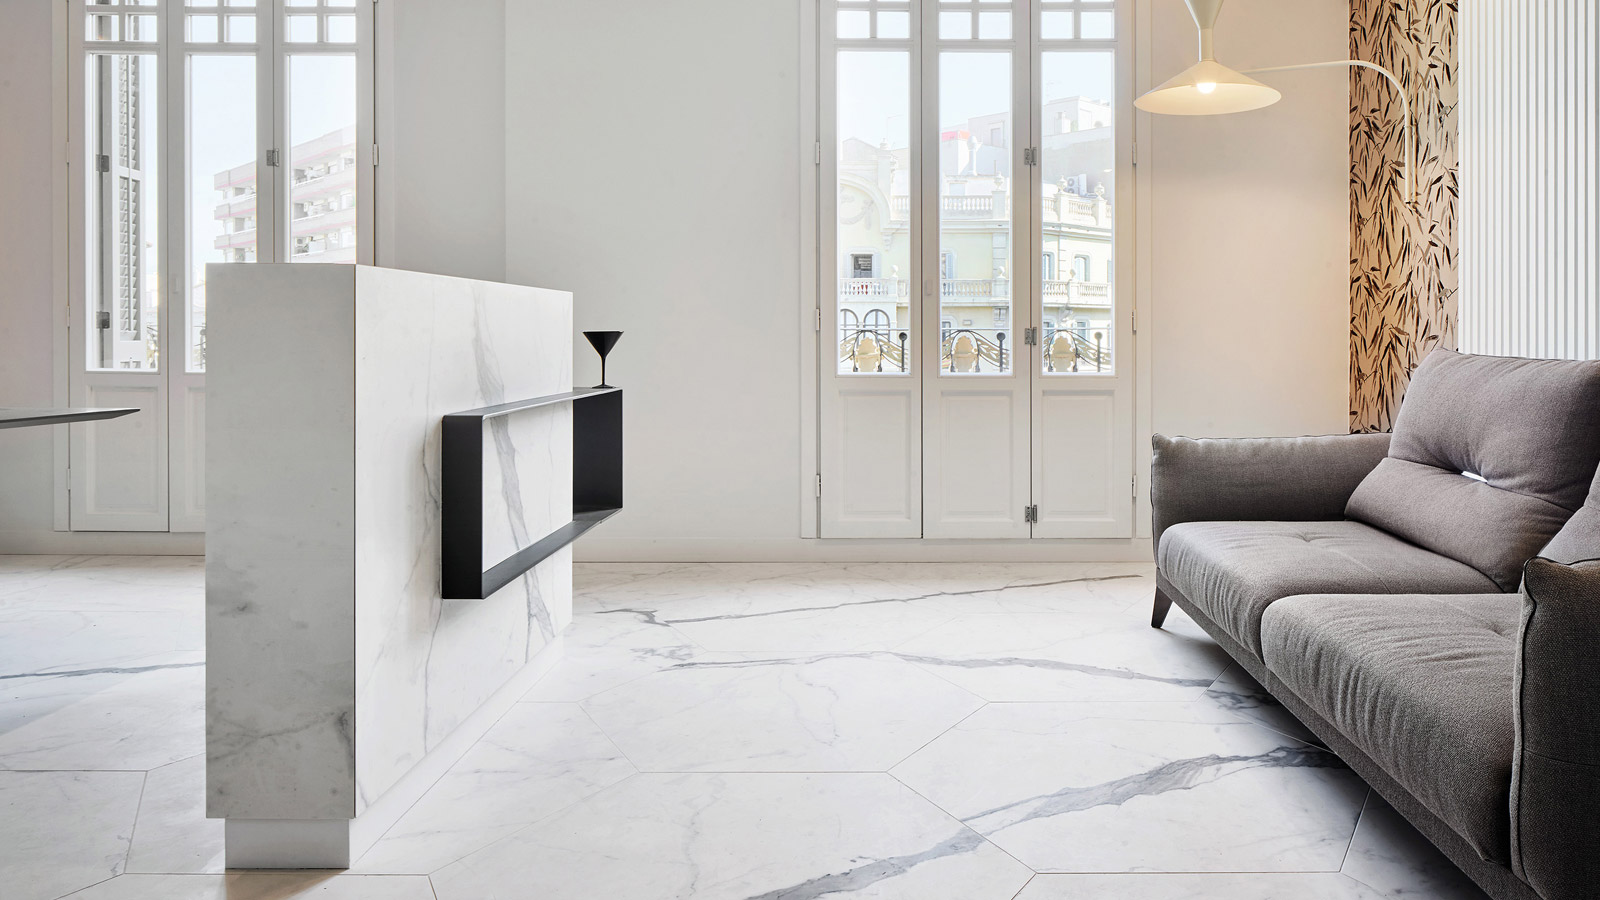 Porcelanosa Grupo Projects: a residential area in Barcelona with marble as the main theme